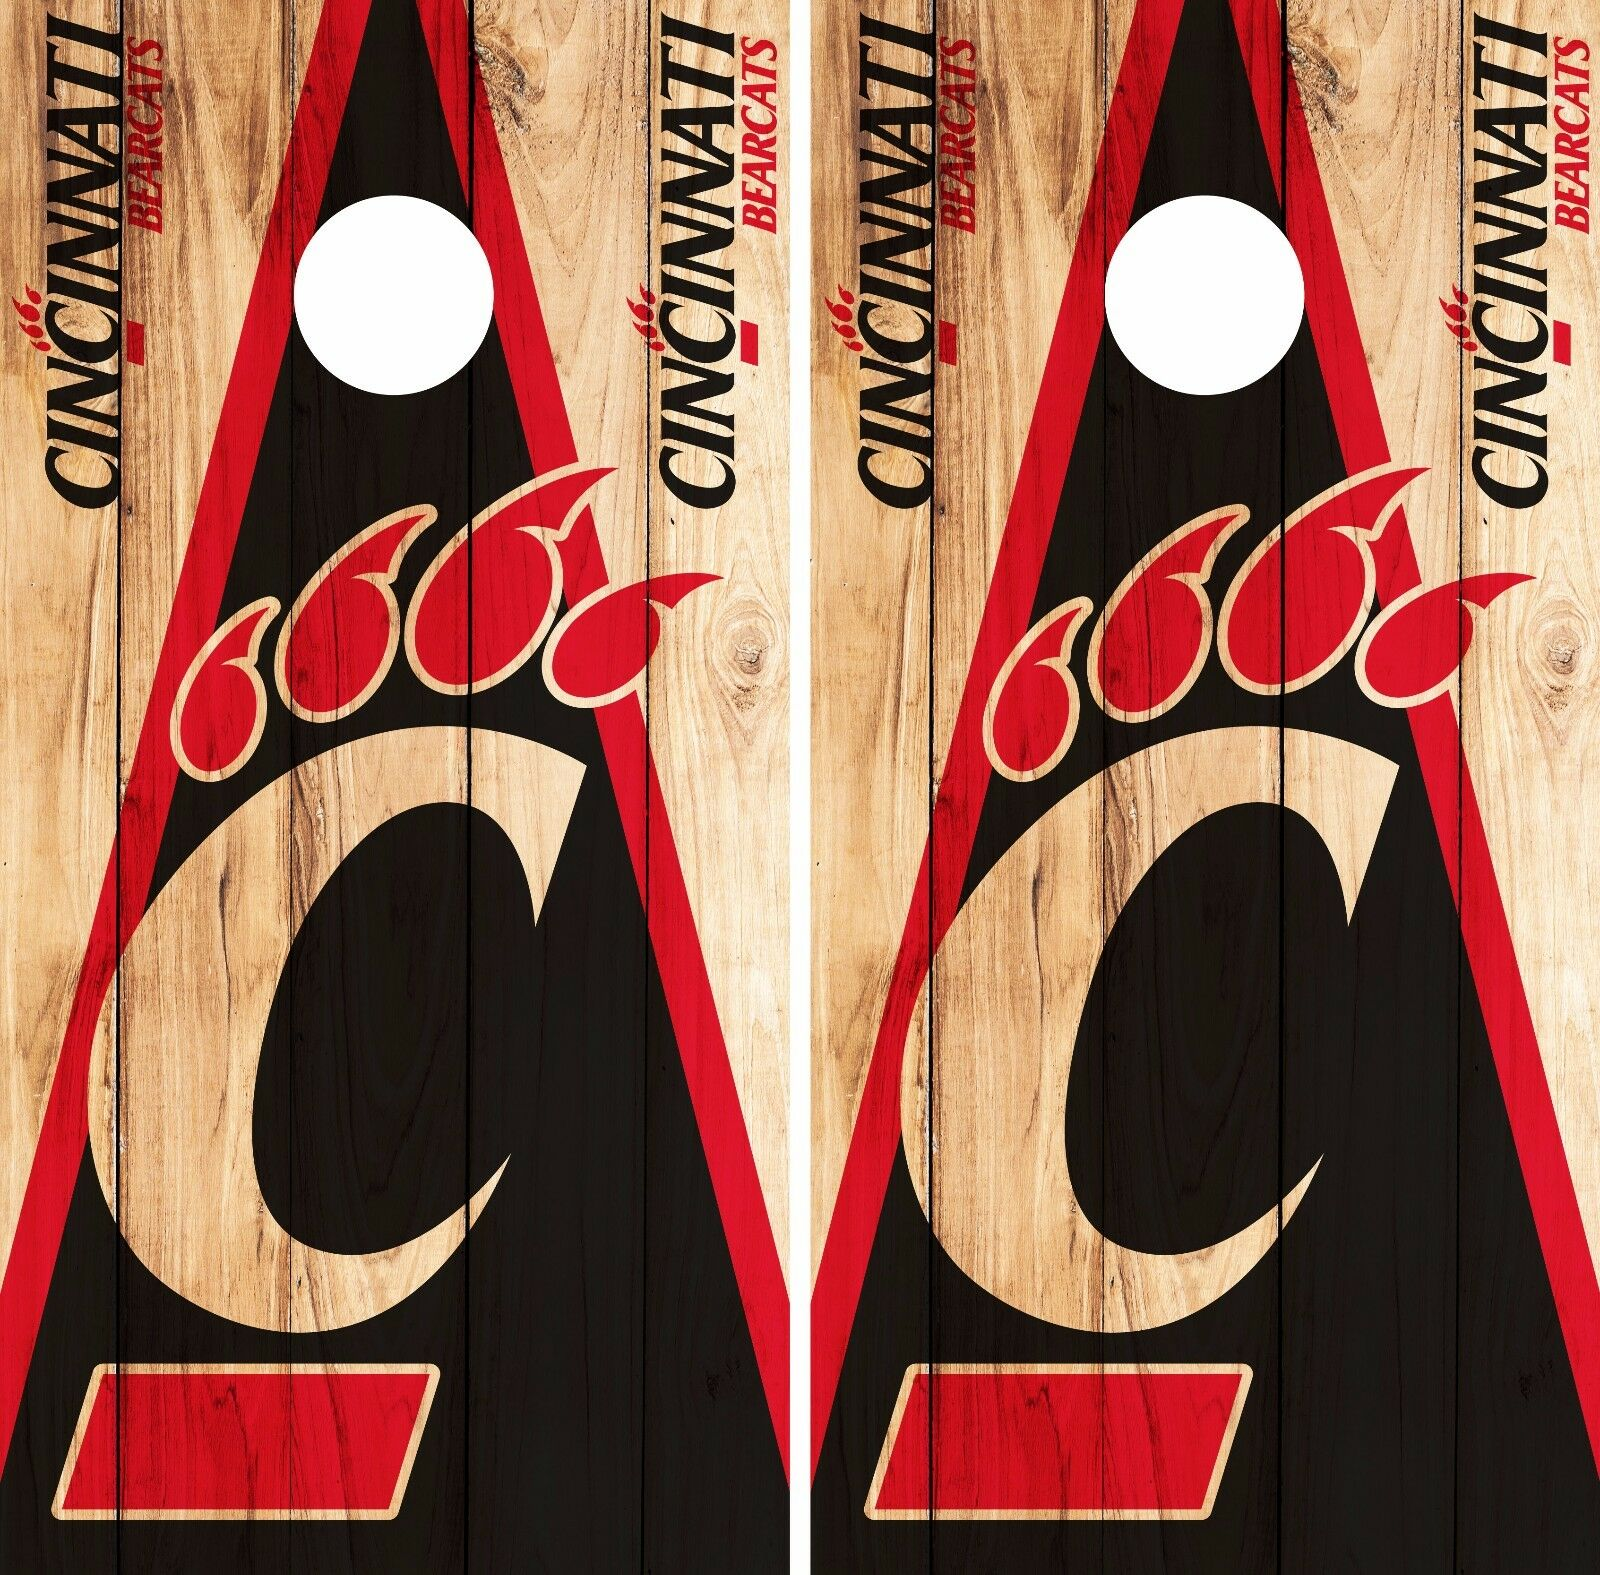 Cincinnati Bearcats Cornhole Skin Wrap NCAA College Wood Design Vinyl DR343